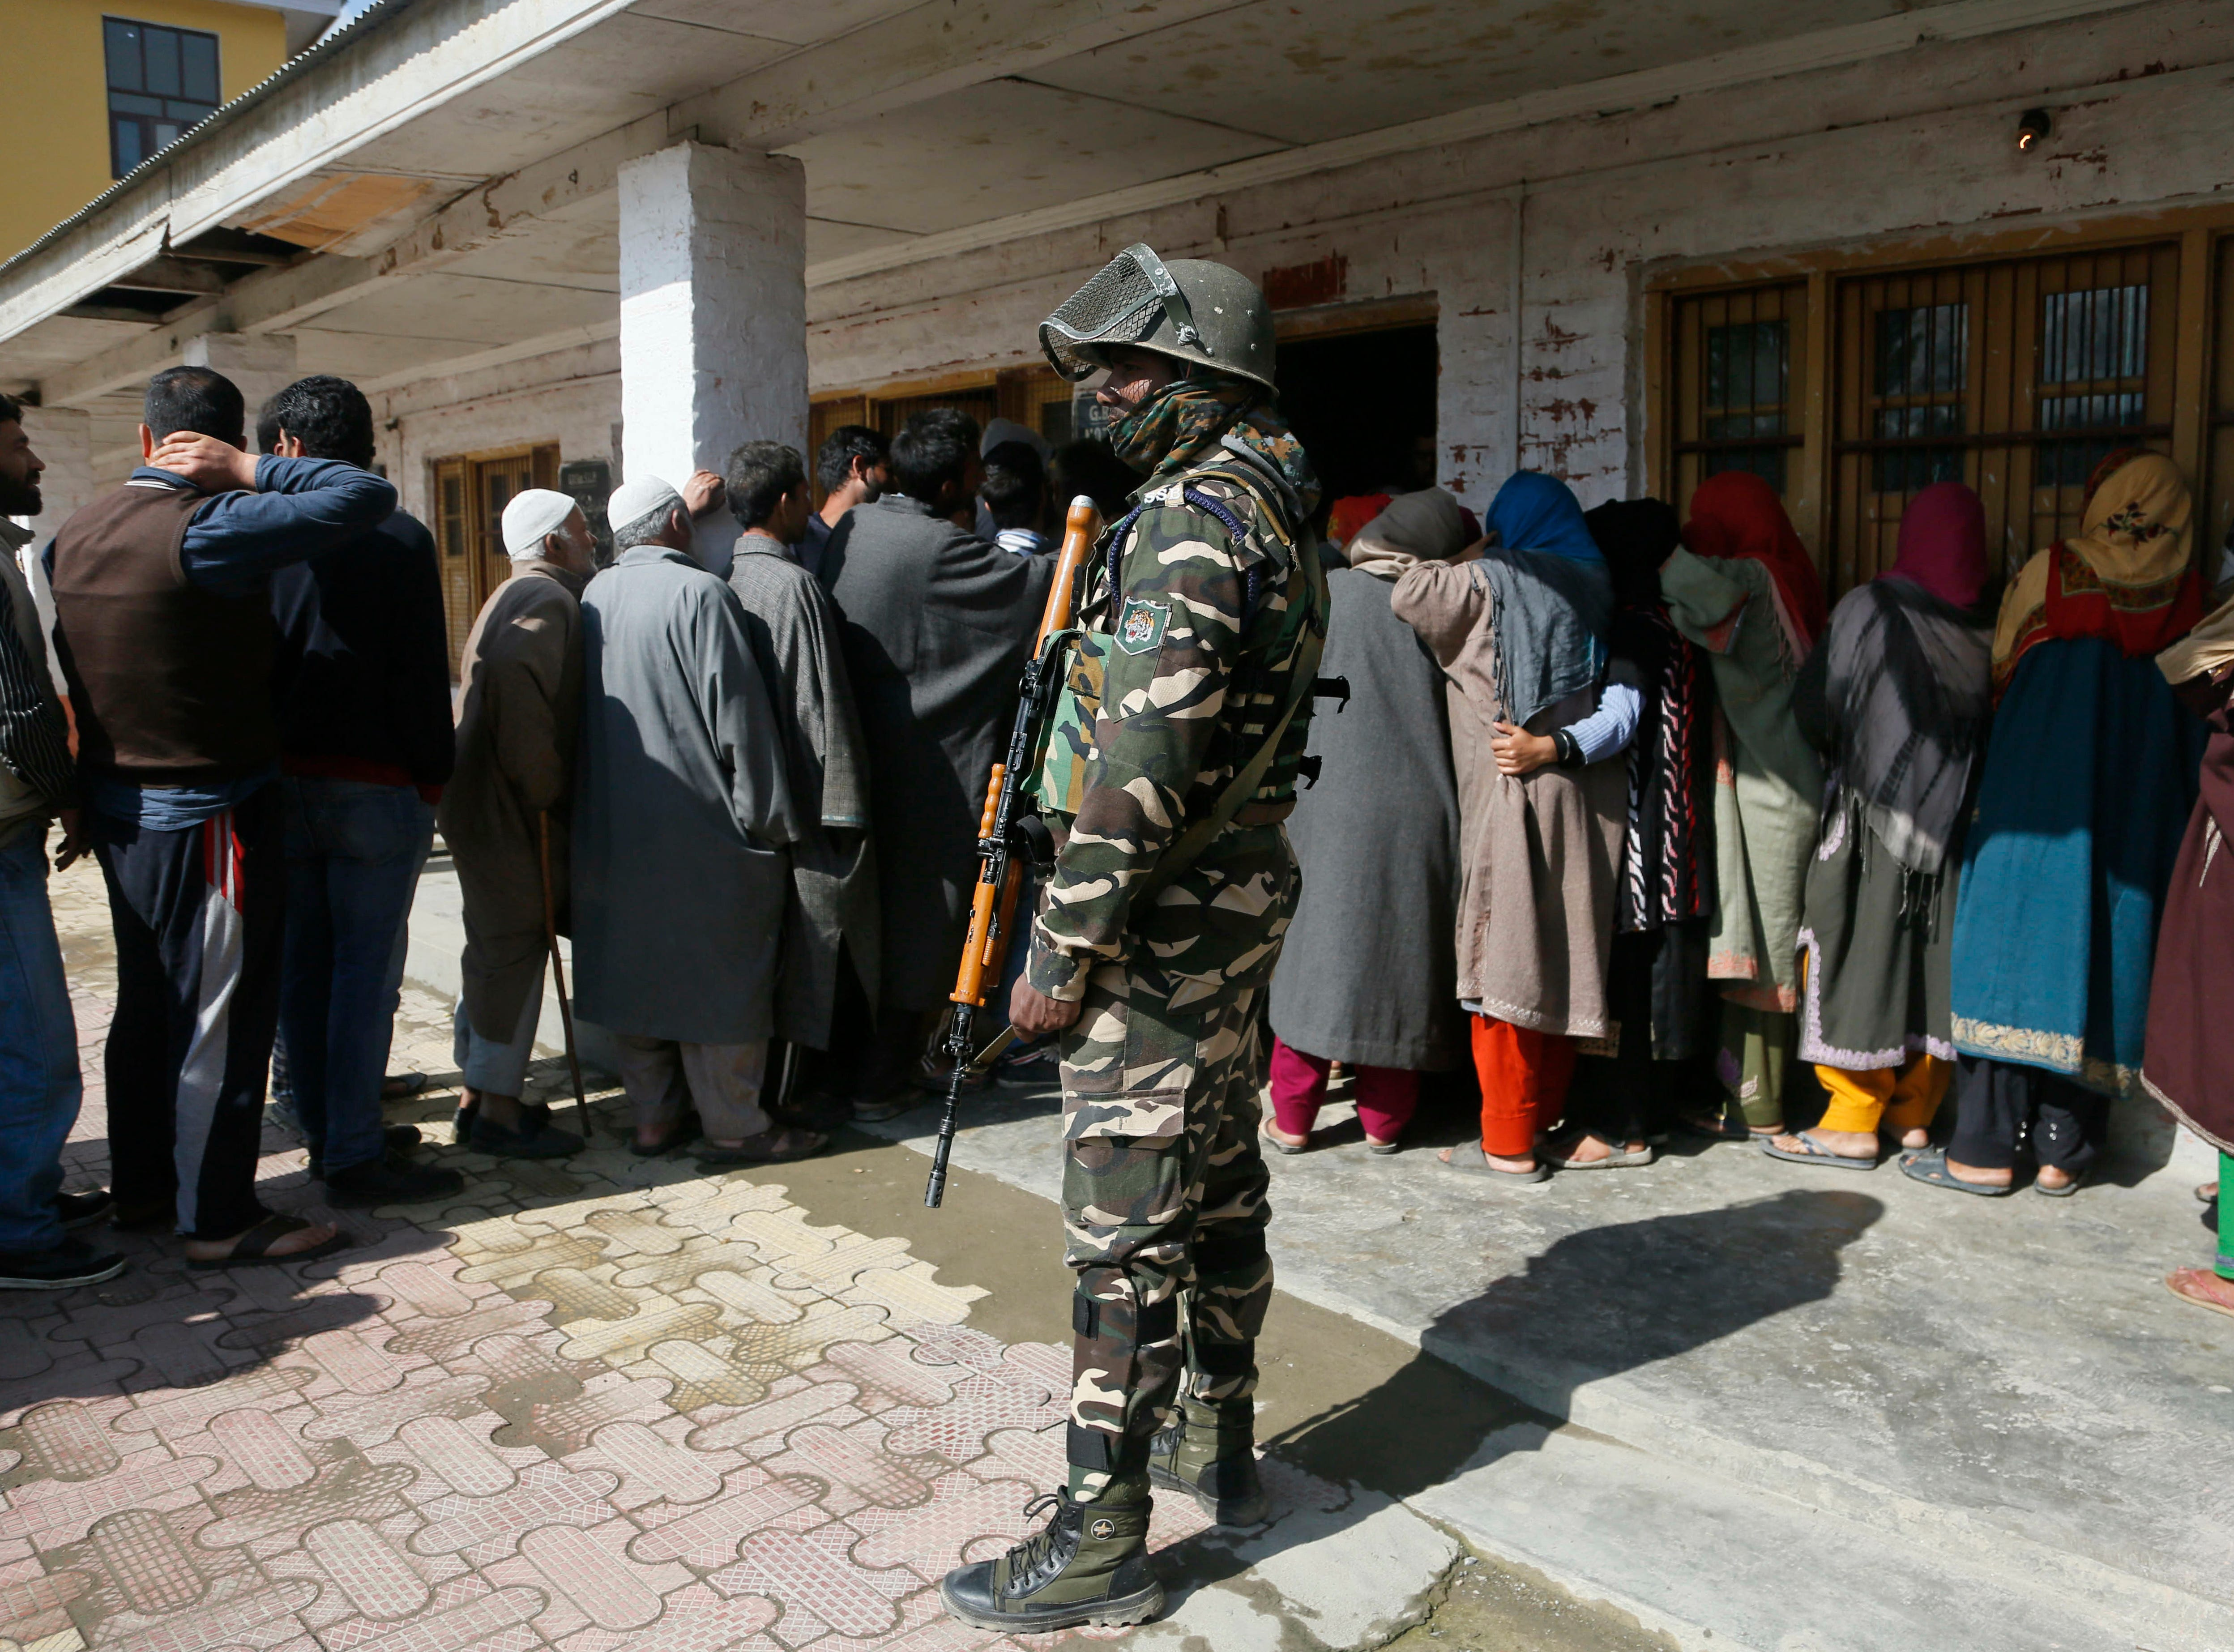 An Indian paramilitary soldier stands guard as Kashmiri voters wait in a queue to cast their votes outside a poling station during the second phase of India's general elections, on the outskirts of Srinagar, Indian controlled Kashmir, Thursday, April 18, 2019. Kashmiri separatist leaders who challenge India's sovereignty over the disputed region have called for a boycott of the vote. Most polling stations in Srinagar and Budgam areas of Kashmir looked deserted in the morning with more armed police, paramilitary soldiers and election staff present than voters.